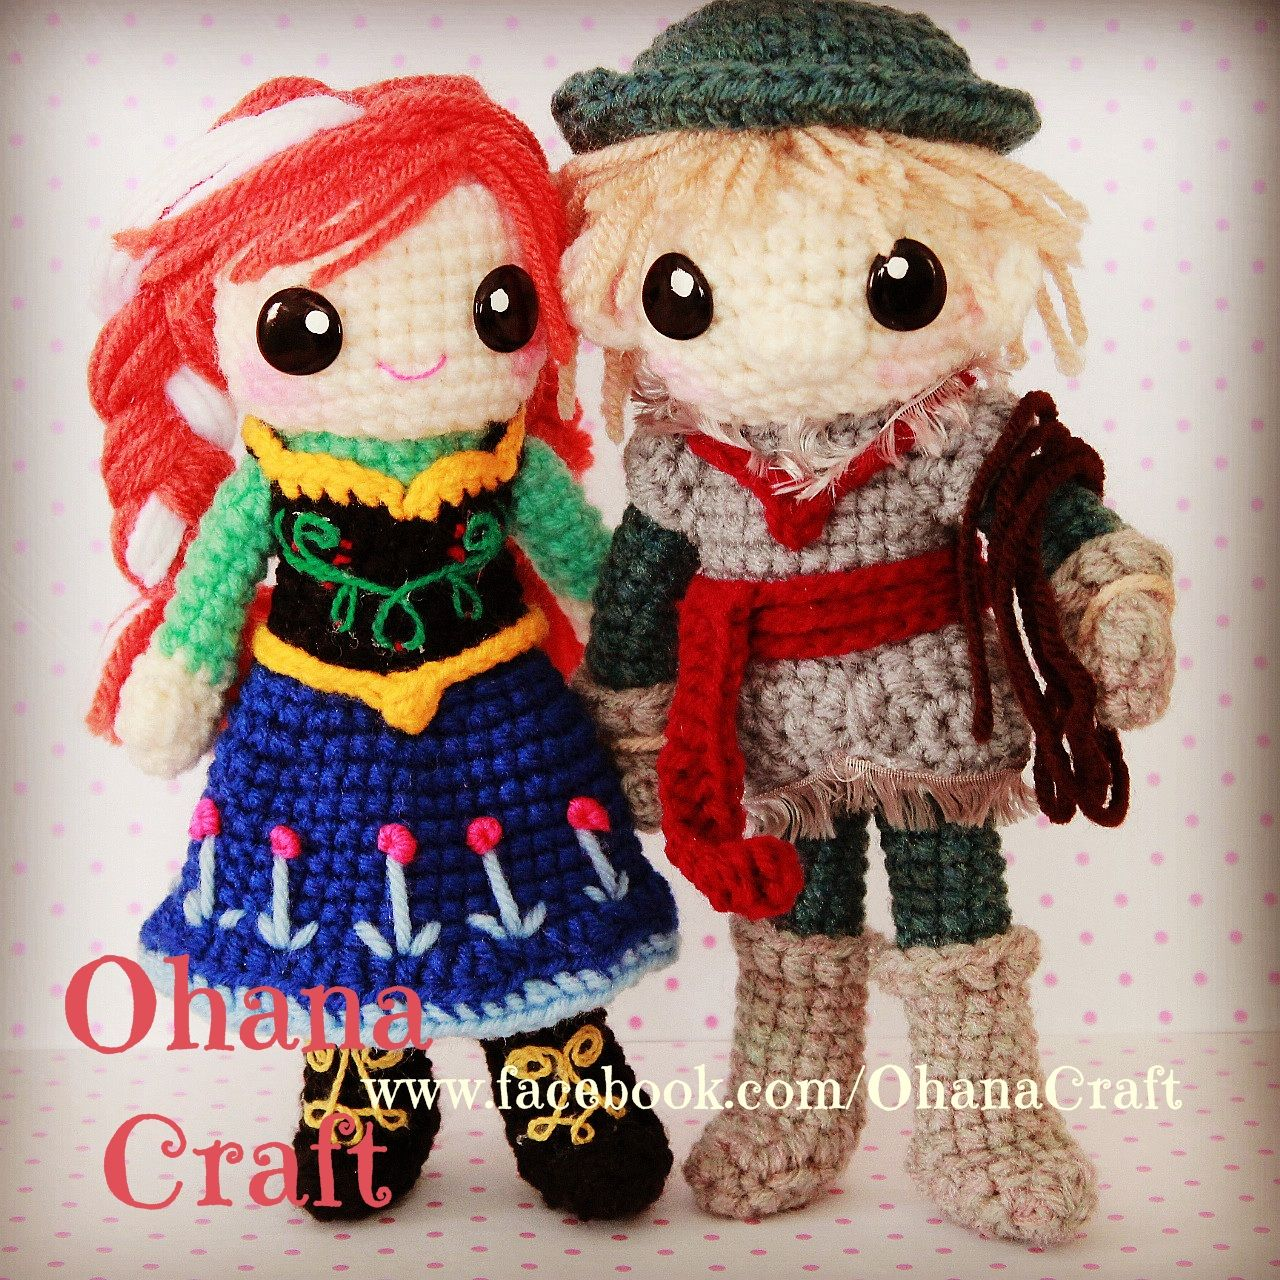 Crochet Frozen dolls and patterns ---- Princess Anna and Kristoff https://www.facebook.com/OhanaCraft